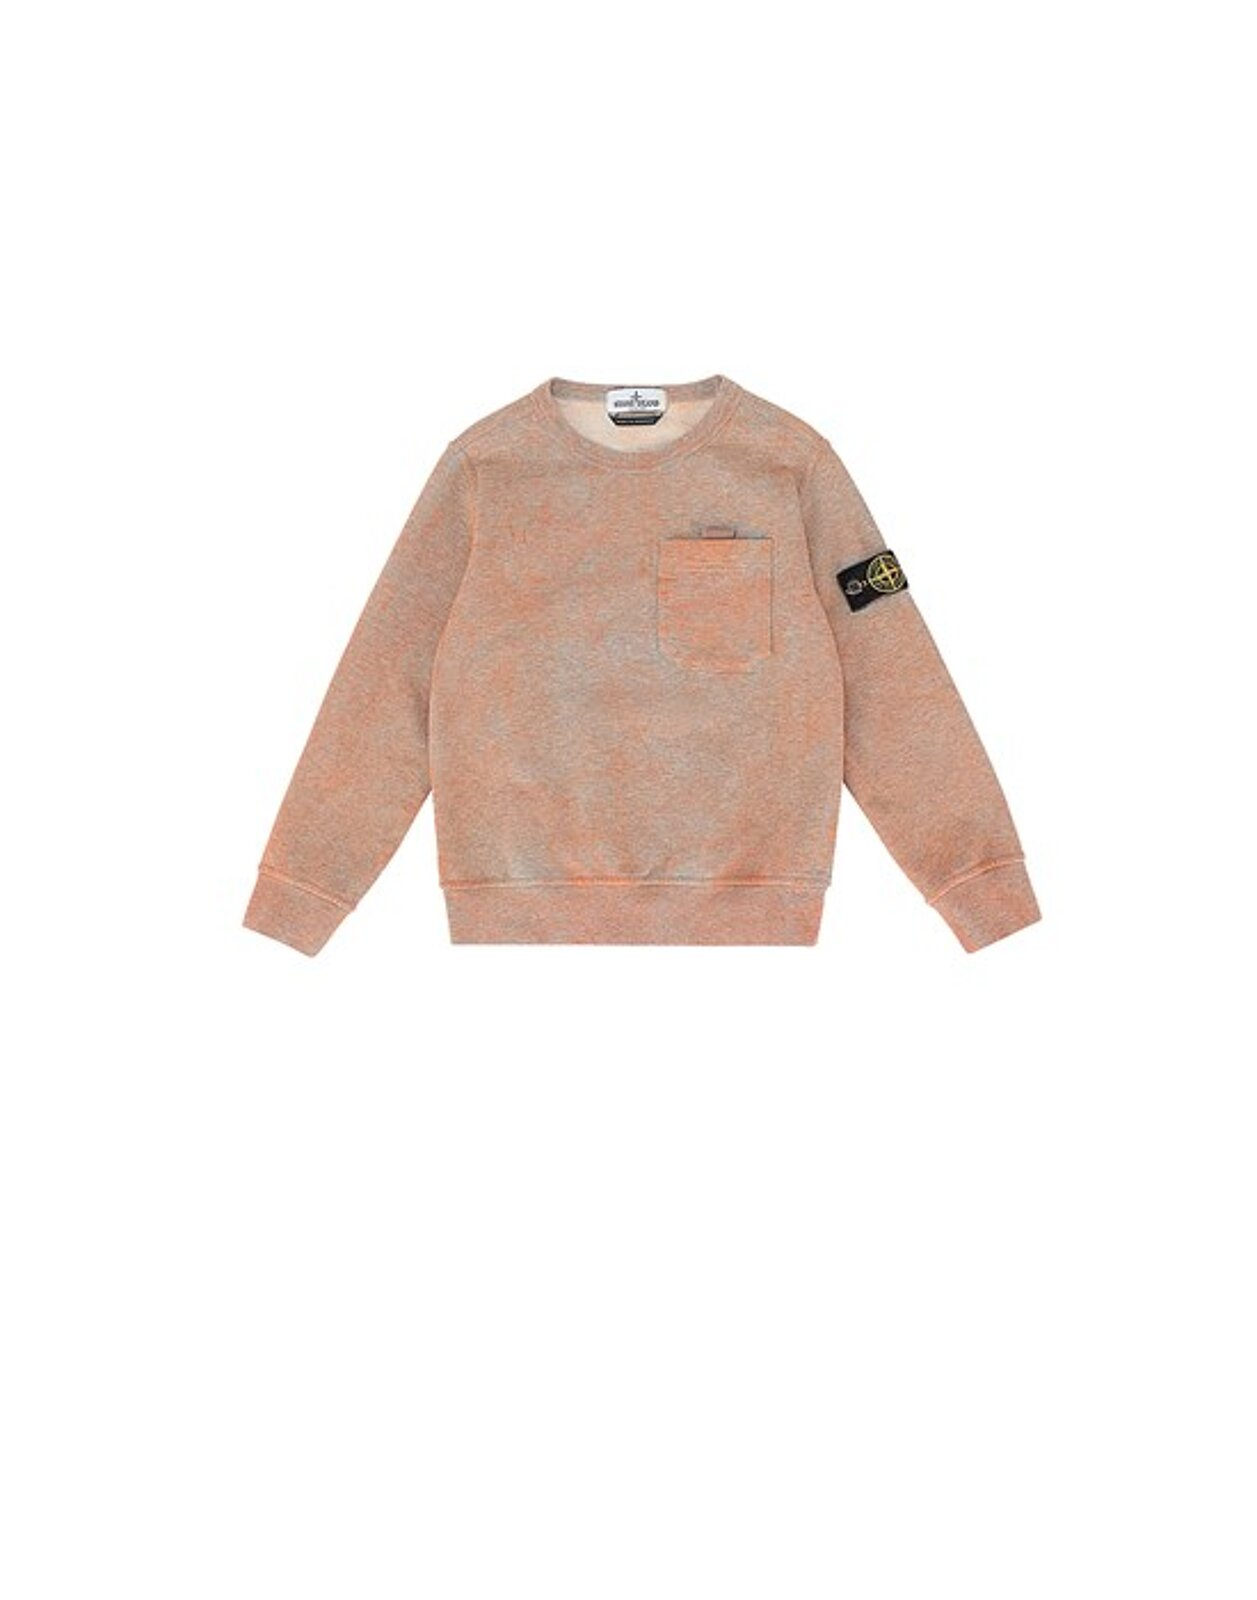 61144 Dust Colour Treatment - Stone Island Junior